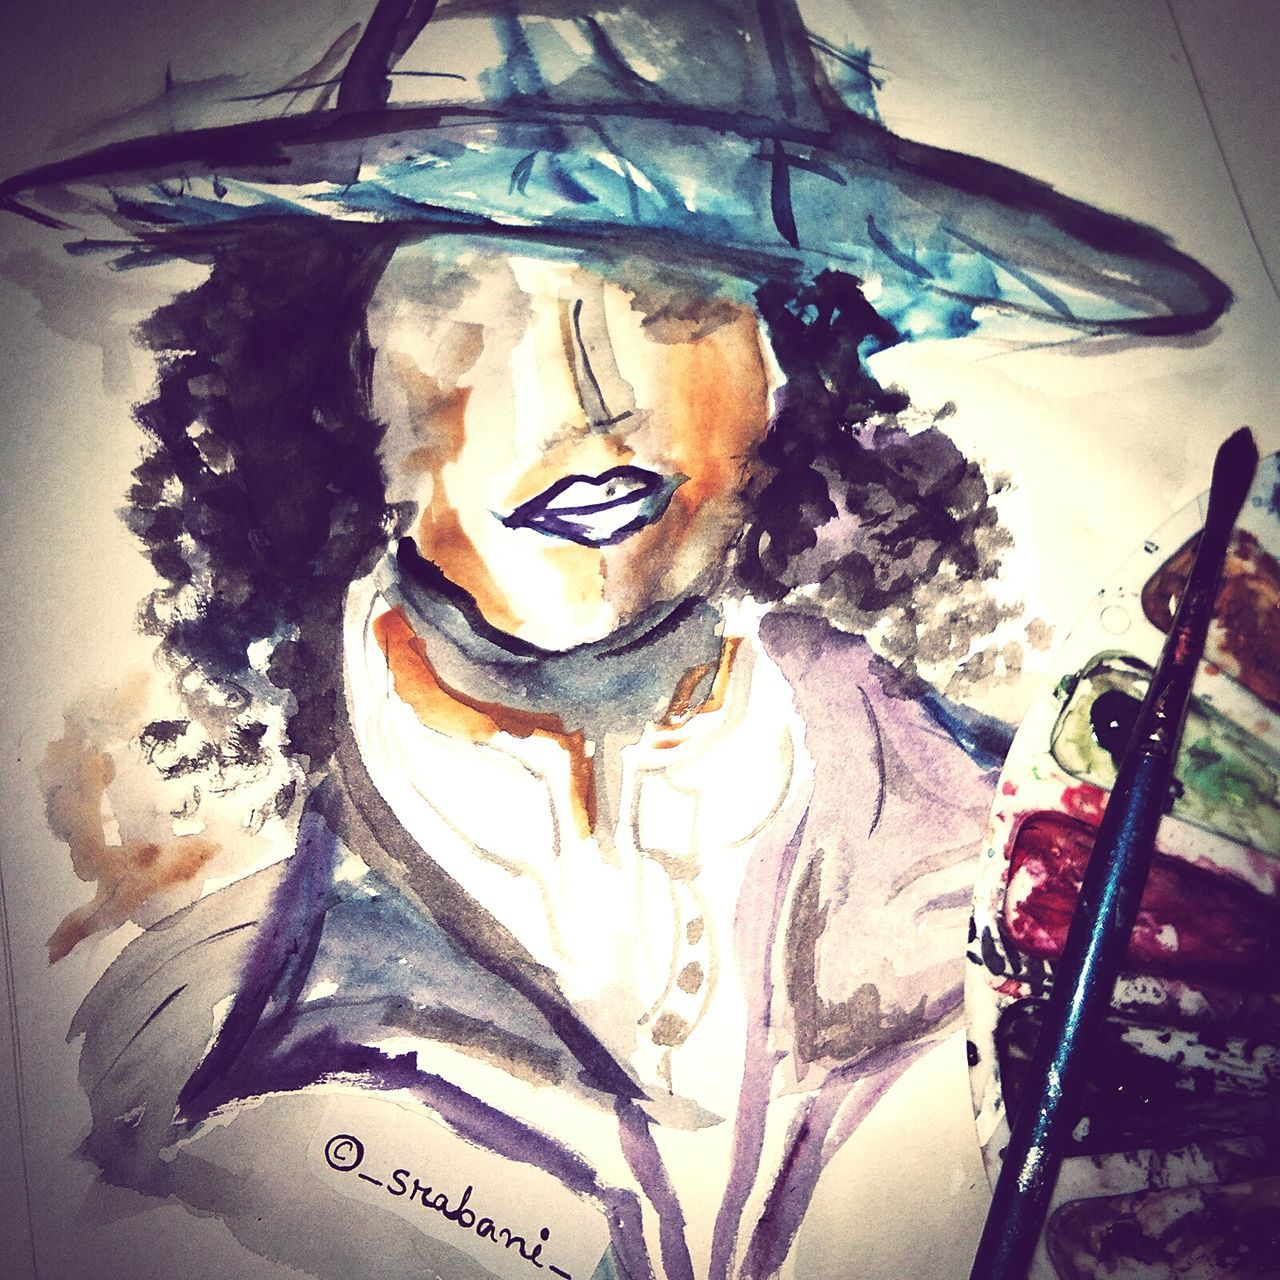 My art Abstract Close-up Men One Person People Taking Photos Draw MyArt Myartbook Watercolor Painting Wip